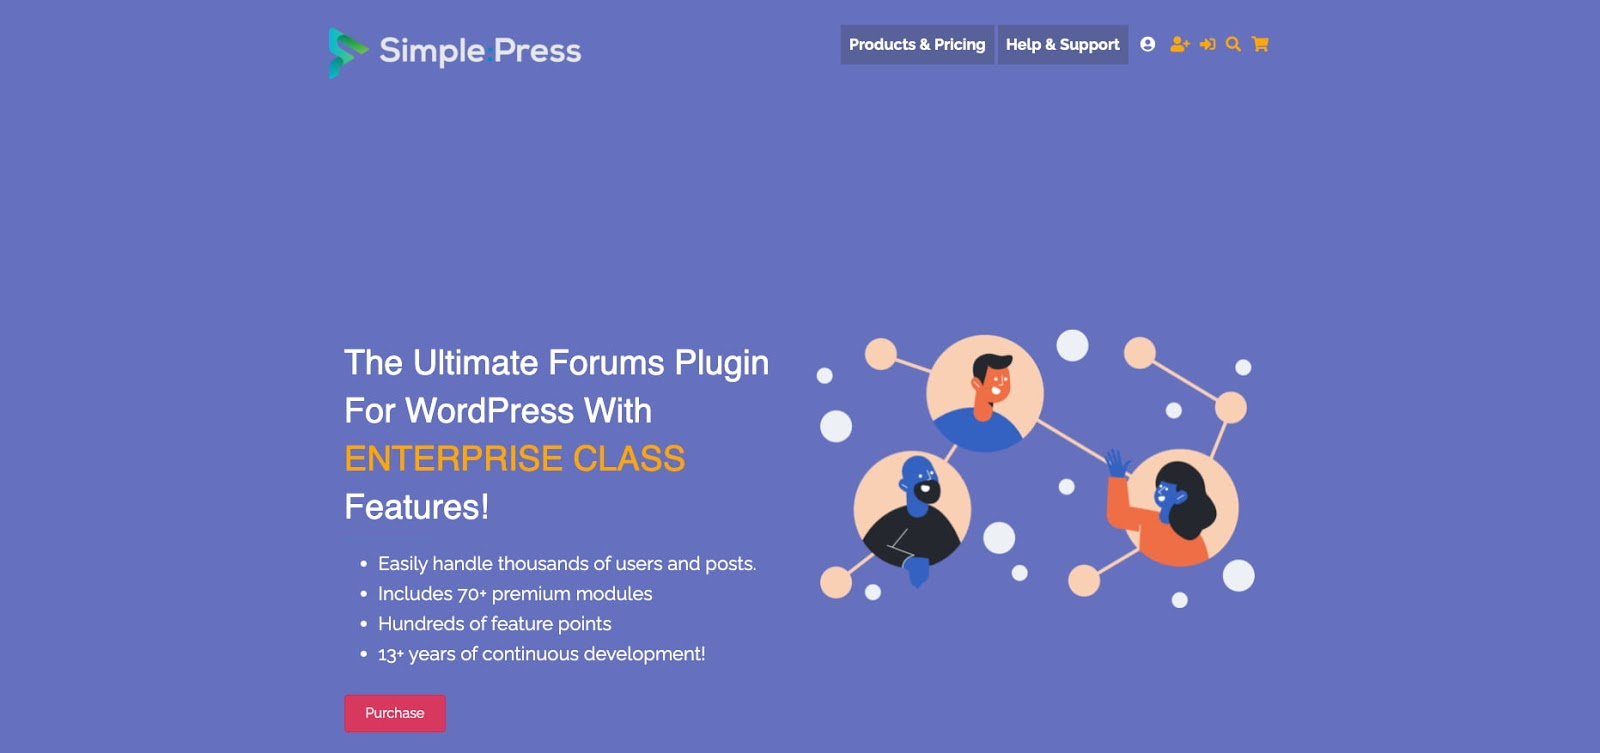 product page for the wordpress forum plugin simple:press